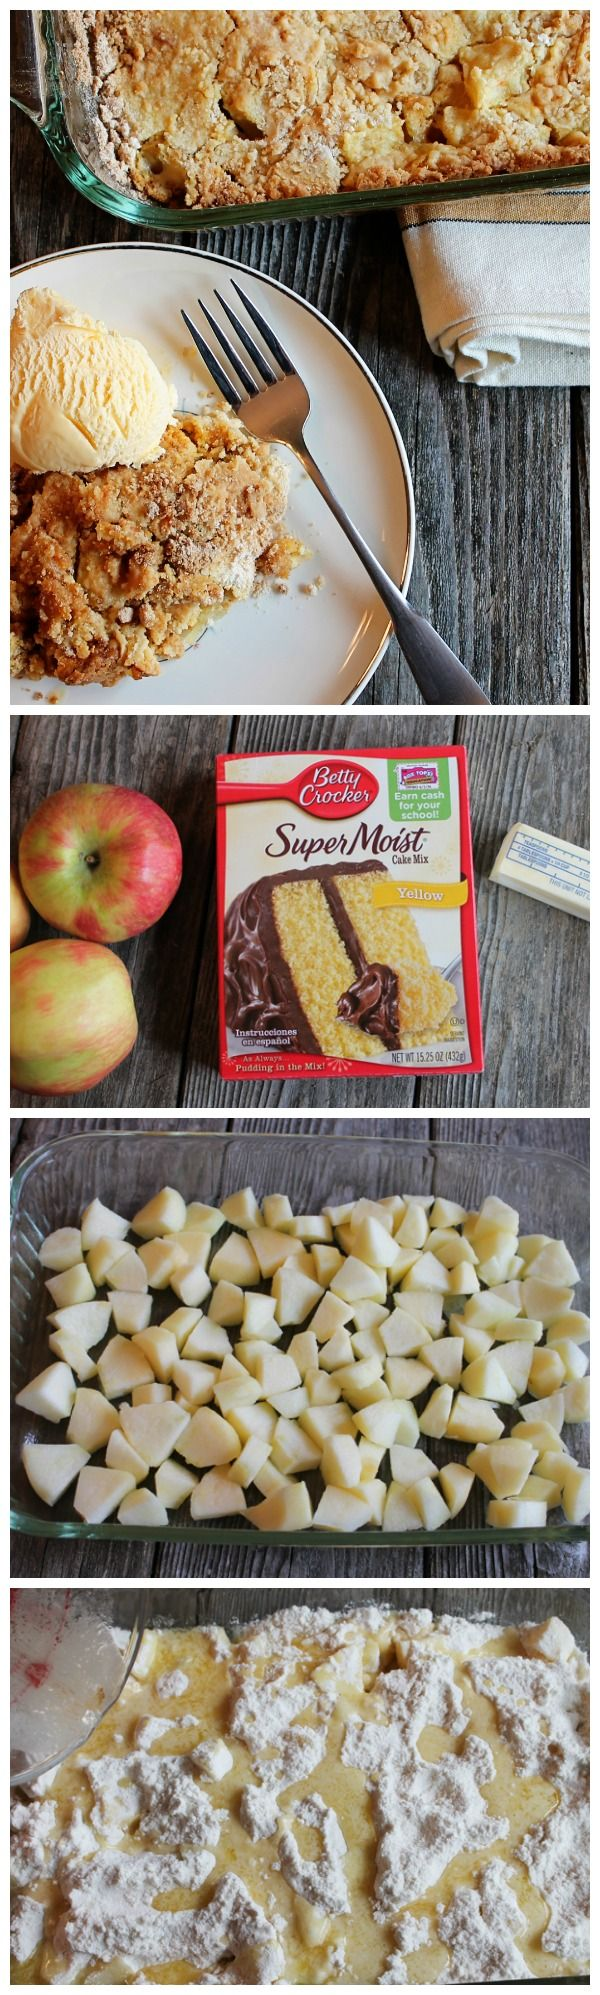 handbags sales Fresh apples  Betty Crocker yellow cake  melted butter  easy fall dessert